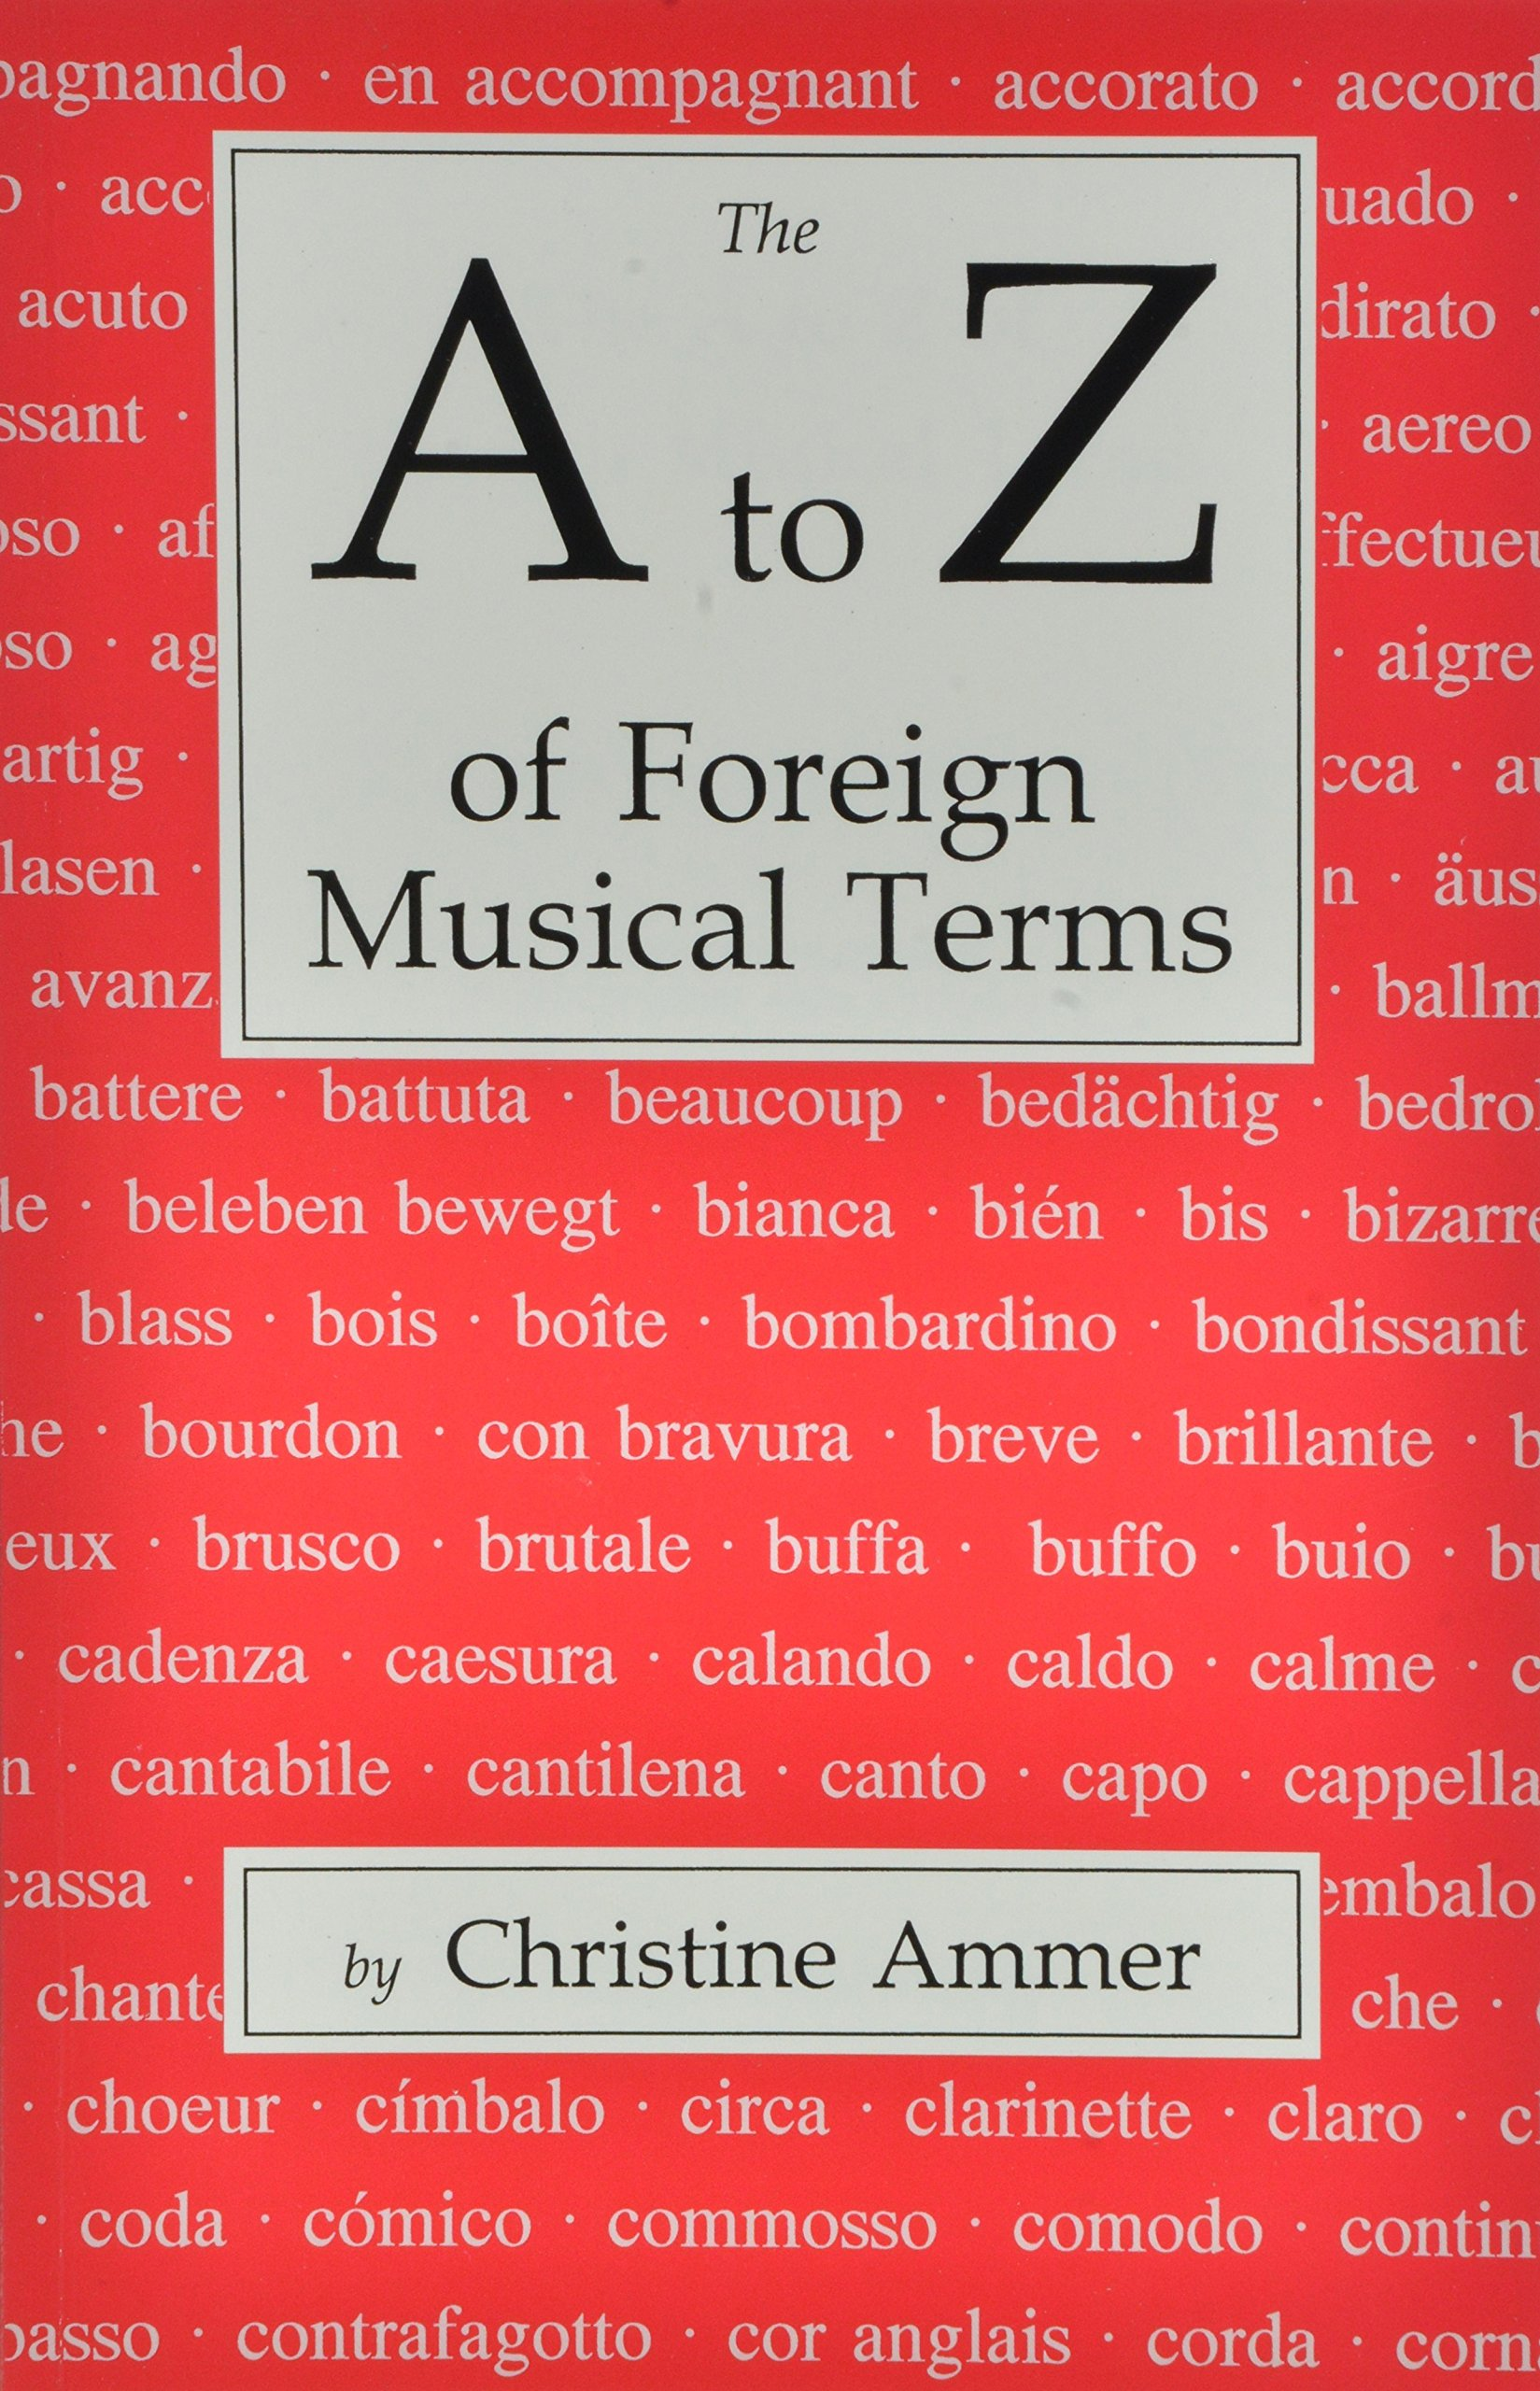 The A to Z of Foreign Musical Terms: From Adagio to Zierlich